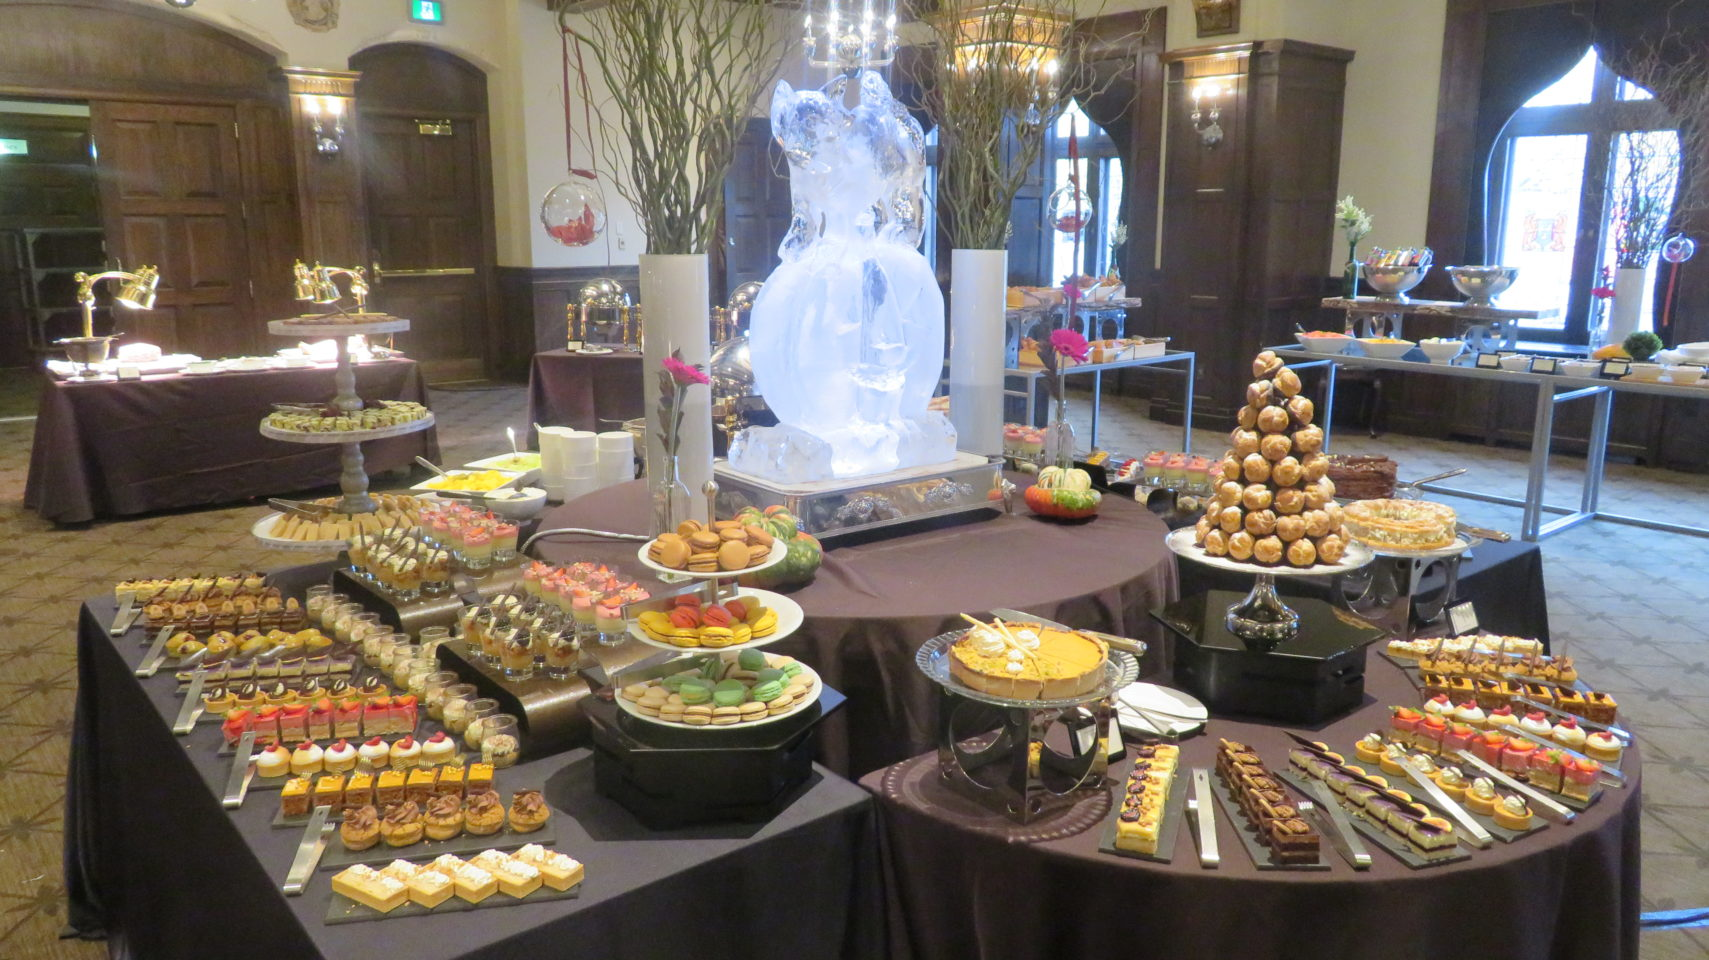 The Dessert Table at the Sunday Brunch of the Fairmont Le Chateau Frontenac